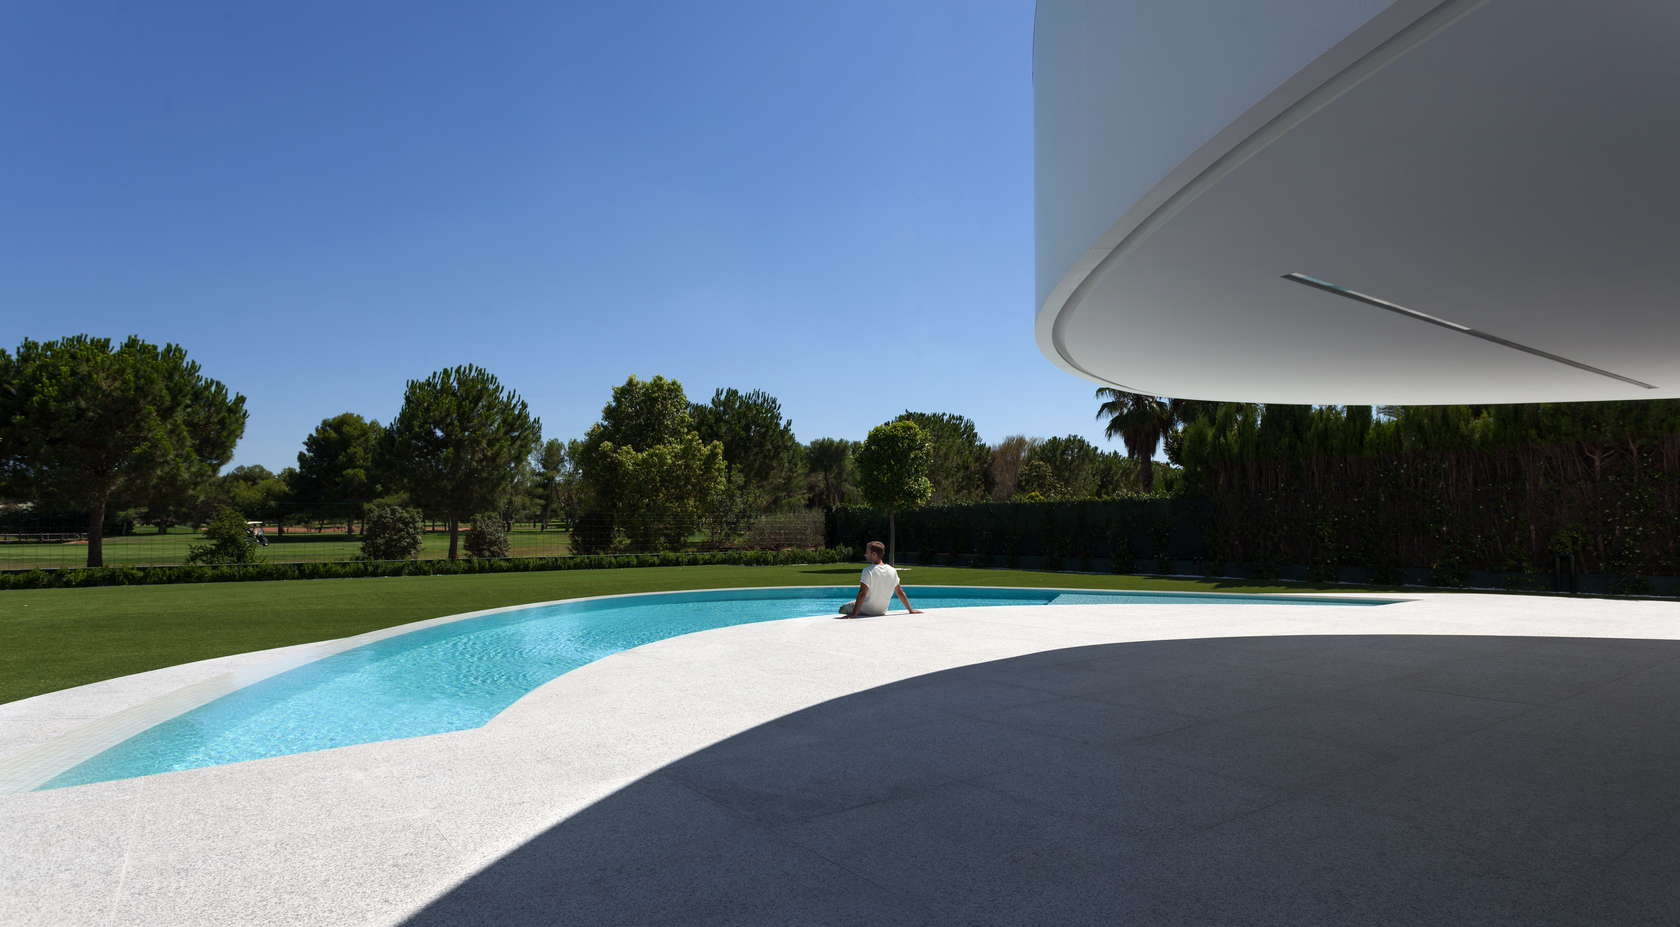 Cool Pool Design - Golf course views and a striking exterior make for a modern marvel